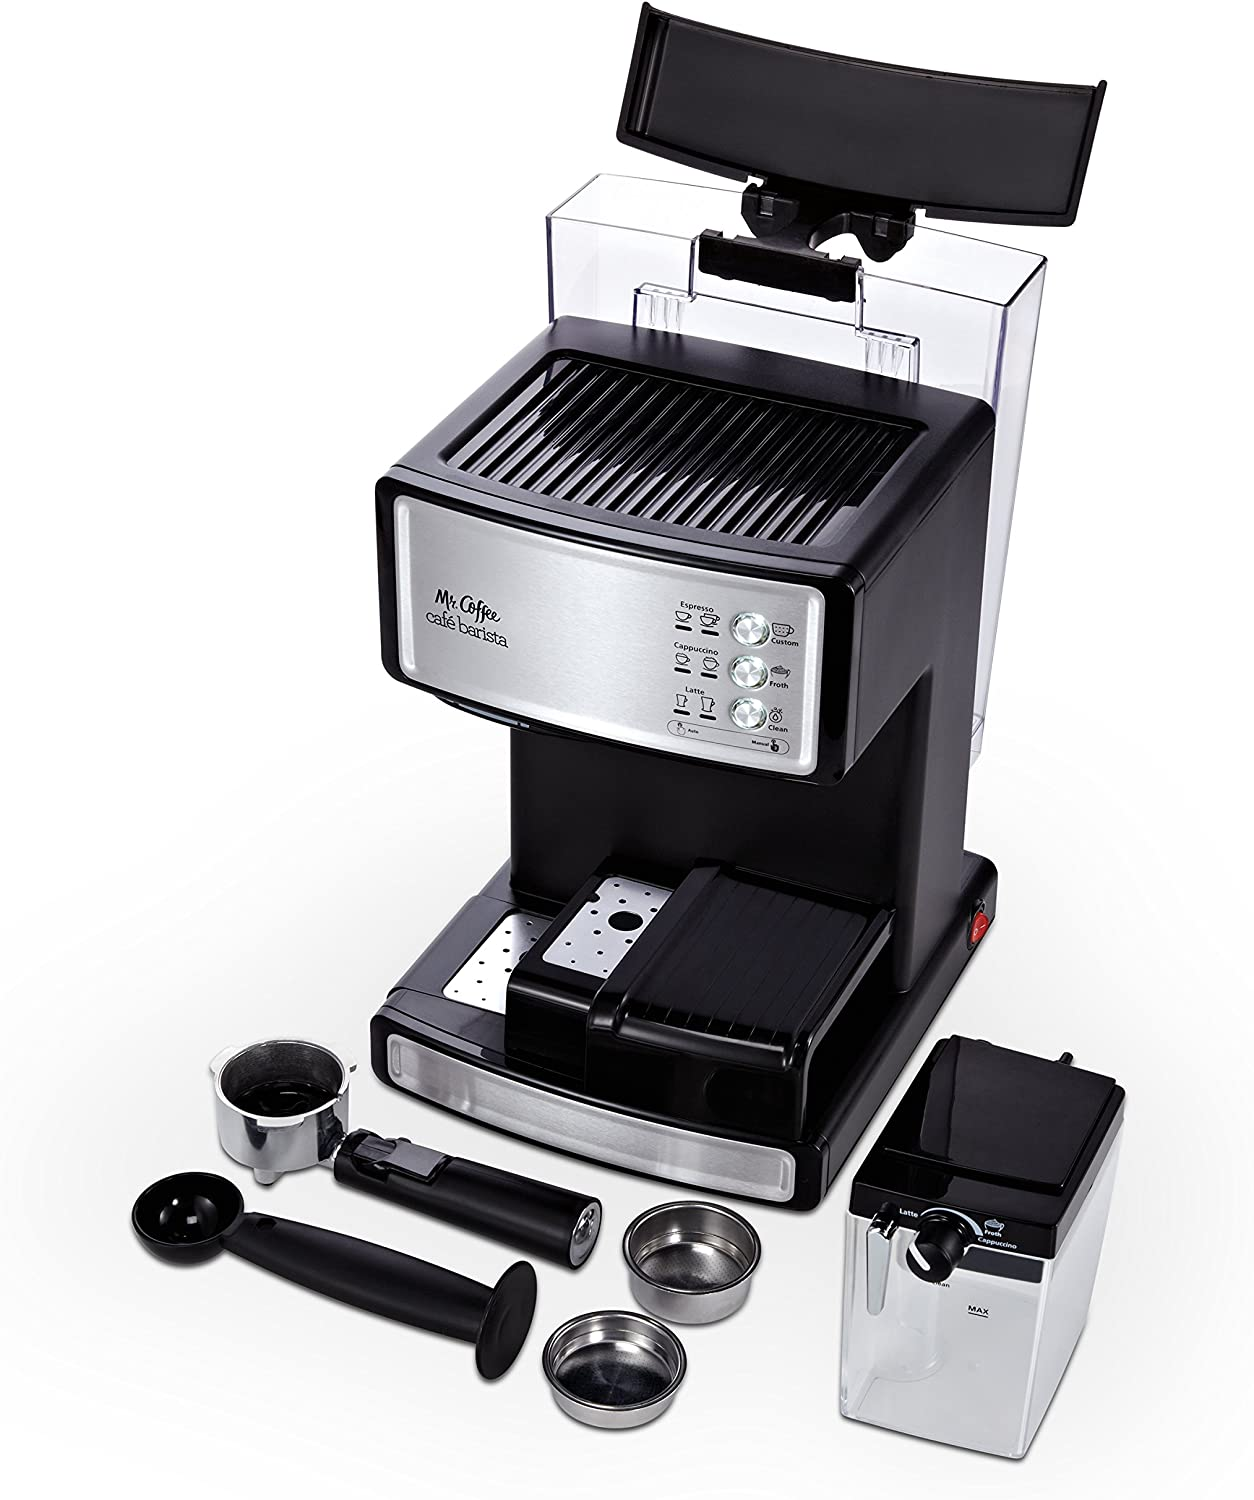 Coffee Cafe Barista Espresso and Cappuccino Maker Silver OpenBox Mr